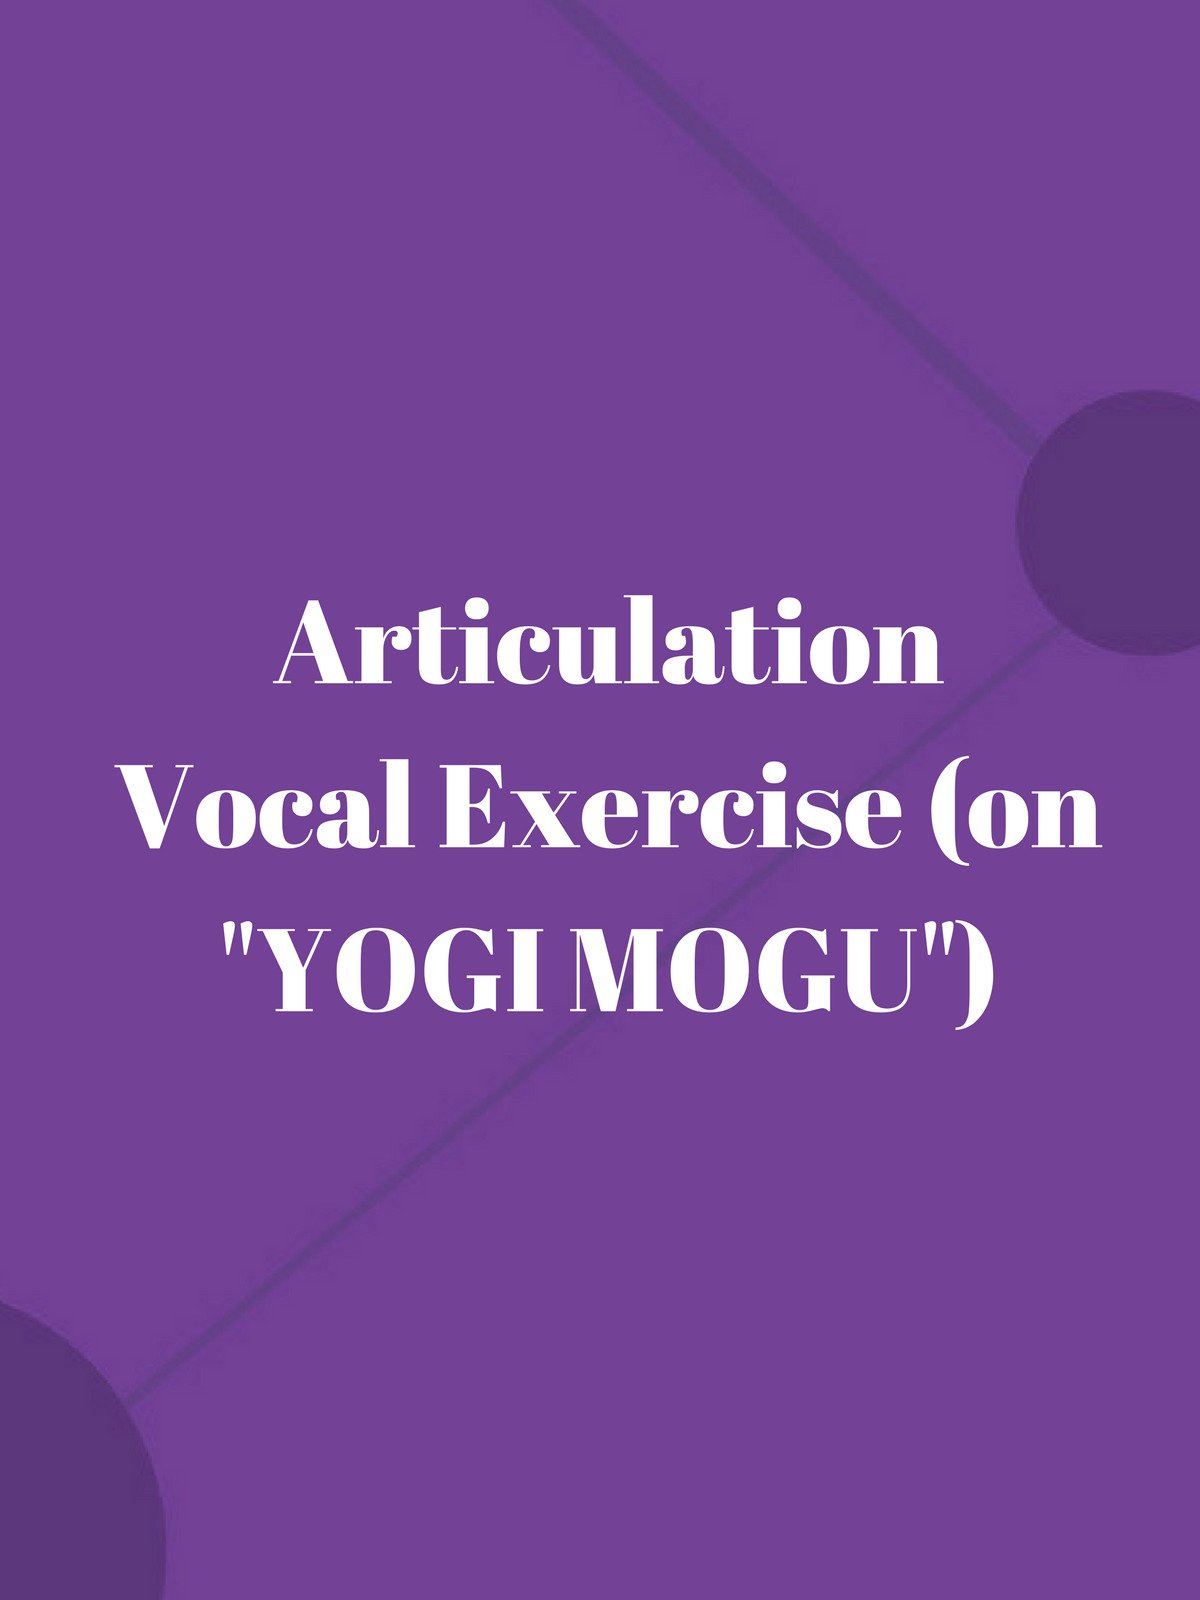 "Articulation Vocal Exercise (on ""Yogi Mogu"")"